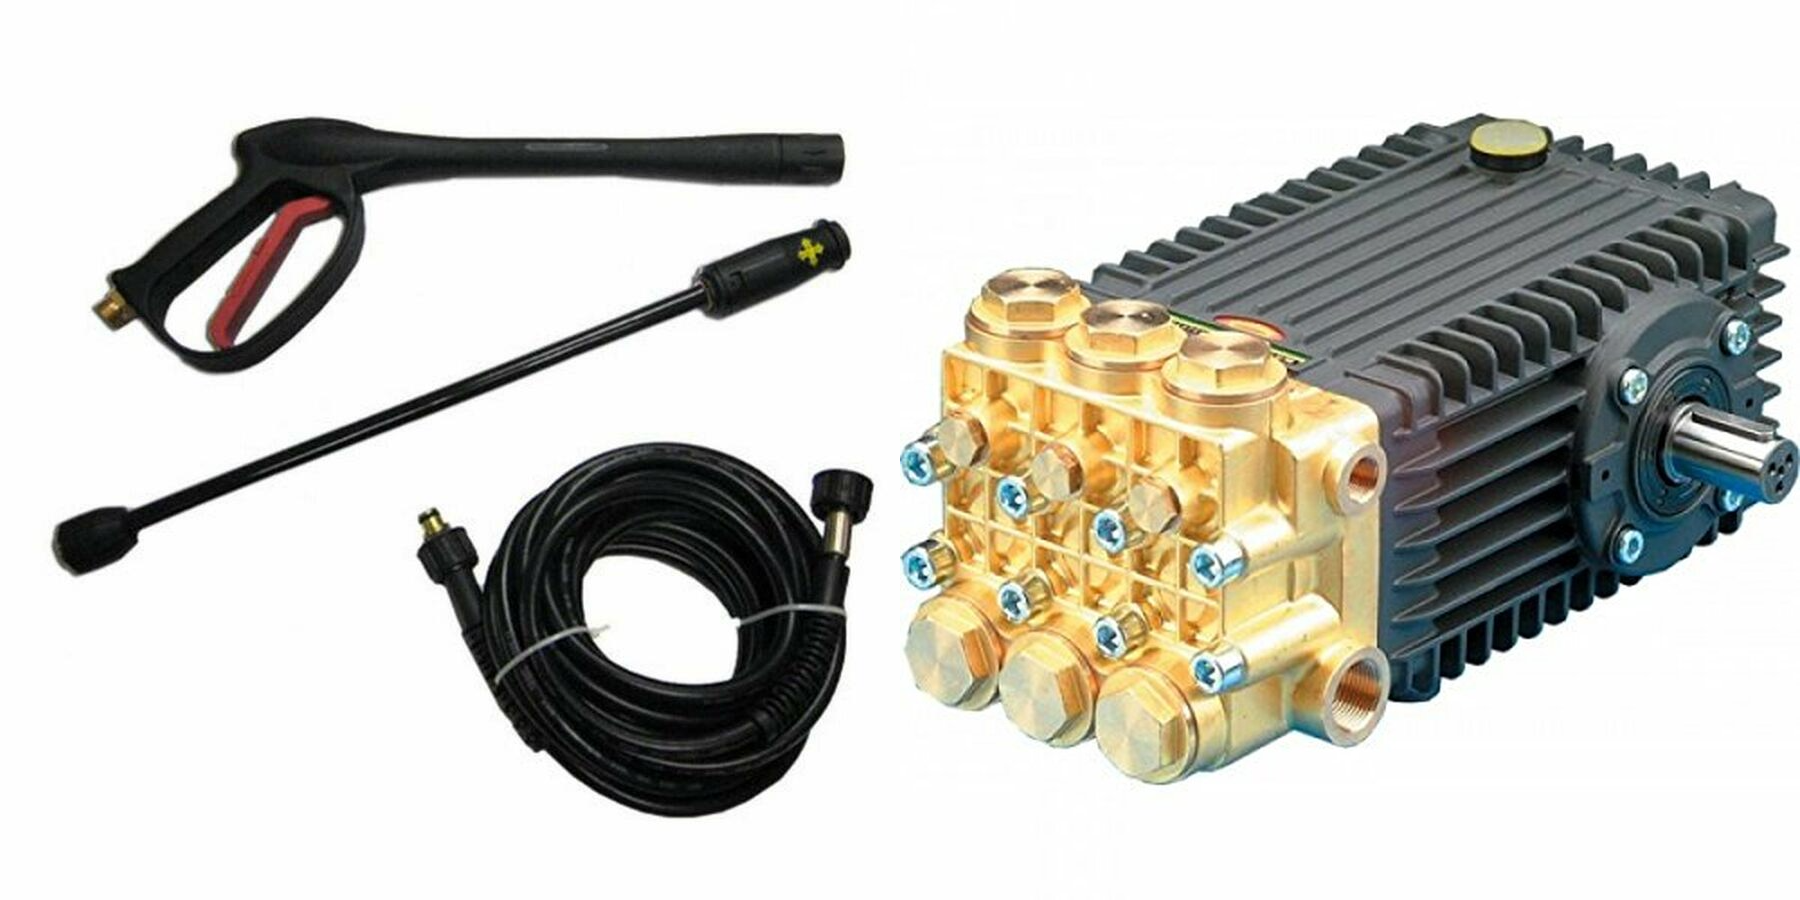 Pressure washing equipment, car care products, and sewer jetting equipment.